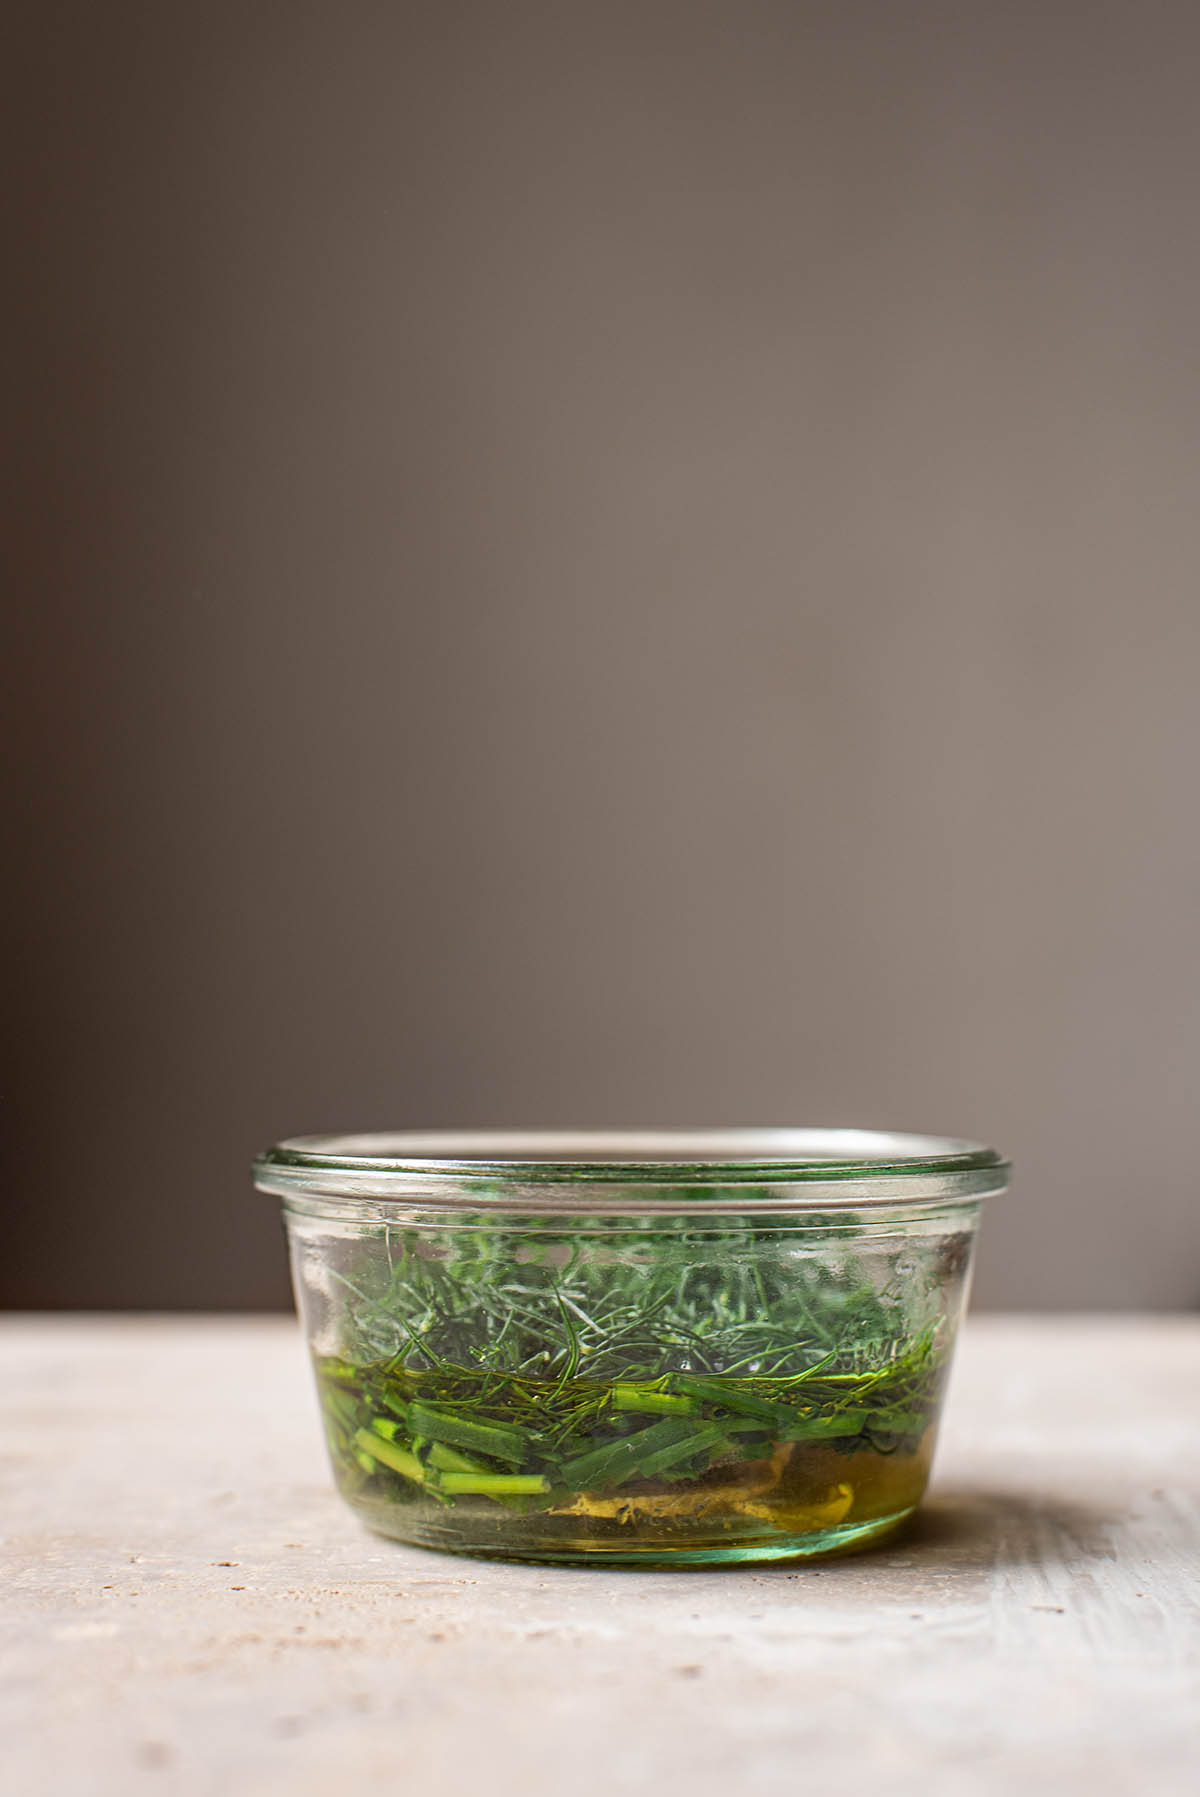 Herb vinaigrette in a glass jar before mixing.